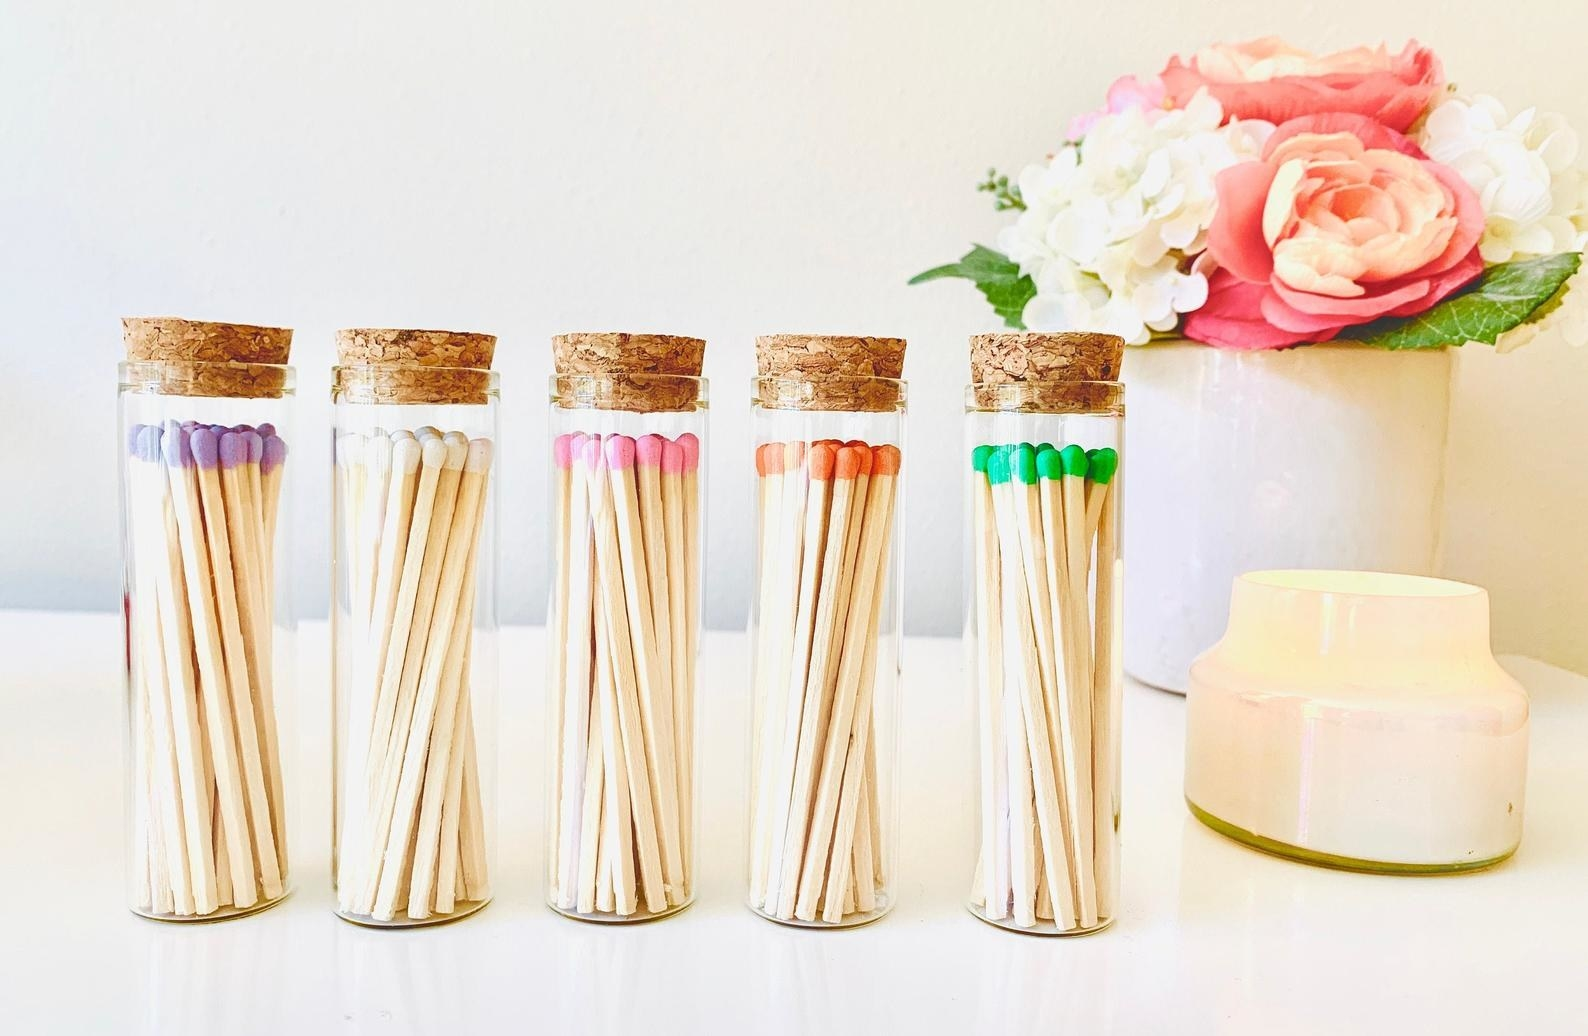 Five tall jars of matches, all with different color tips. The jar is closed by a small cork.